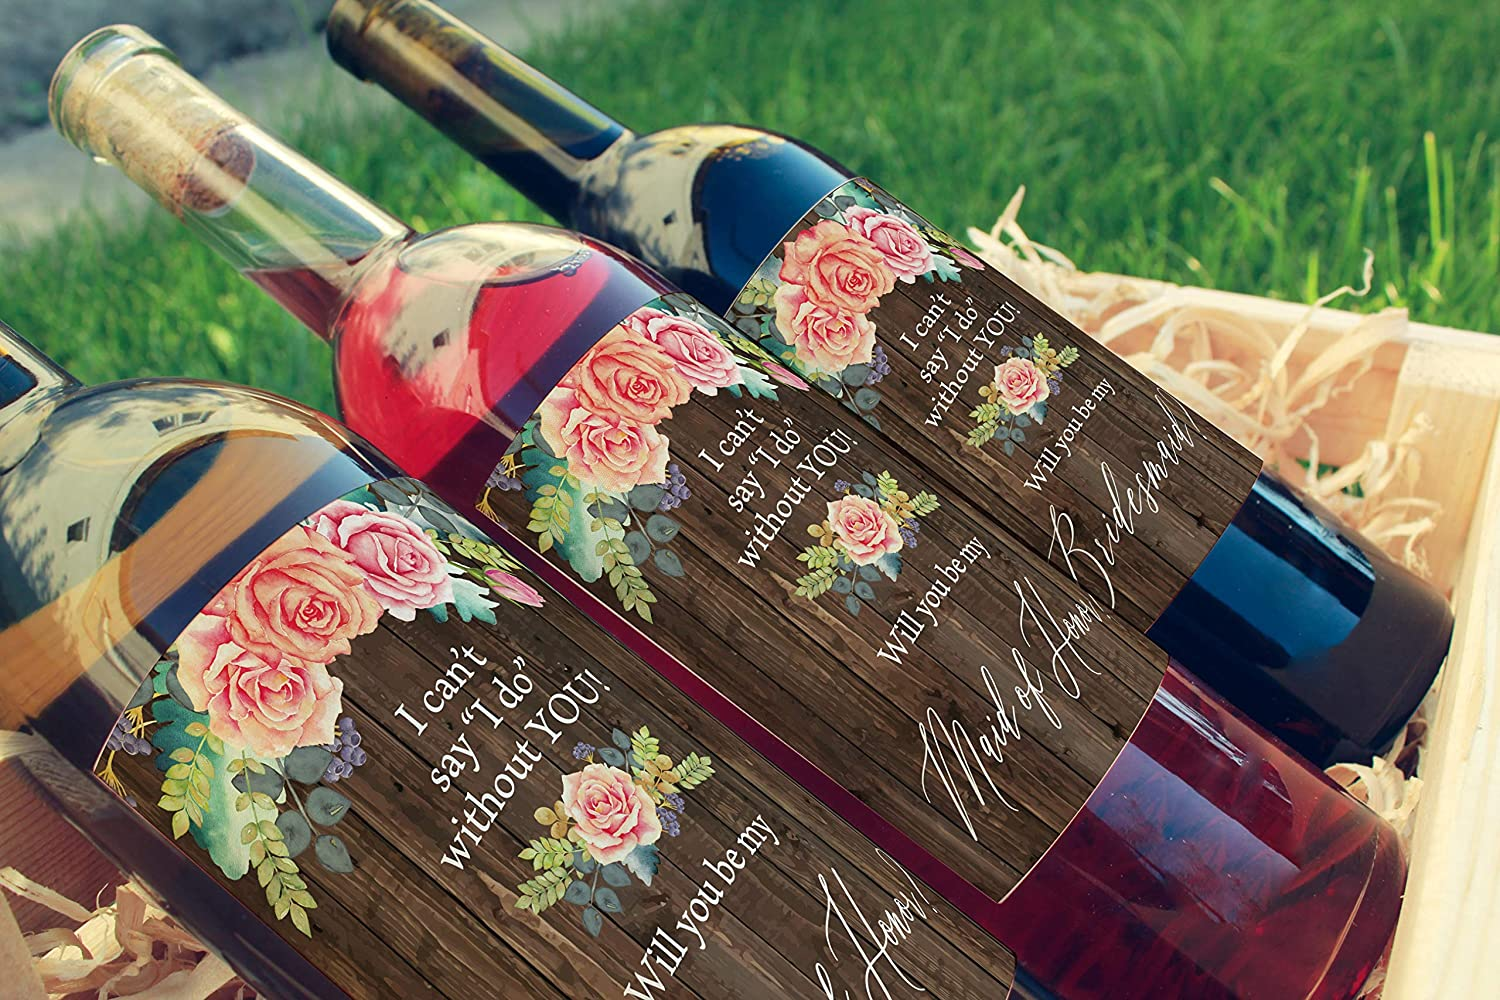 1 Maid of Honor Wine Label 1 Matron of Honor Wine Label Set of 8 includes: 6 Bridesmaid Wine Labels RusticI Can/'t Say I Do Without You Will You Be My Bridesmaid Wine Labels